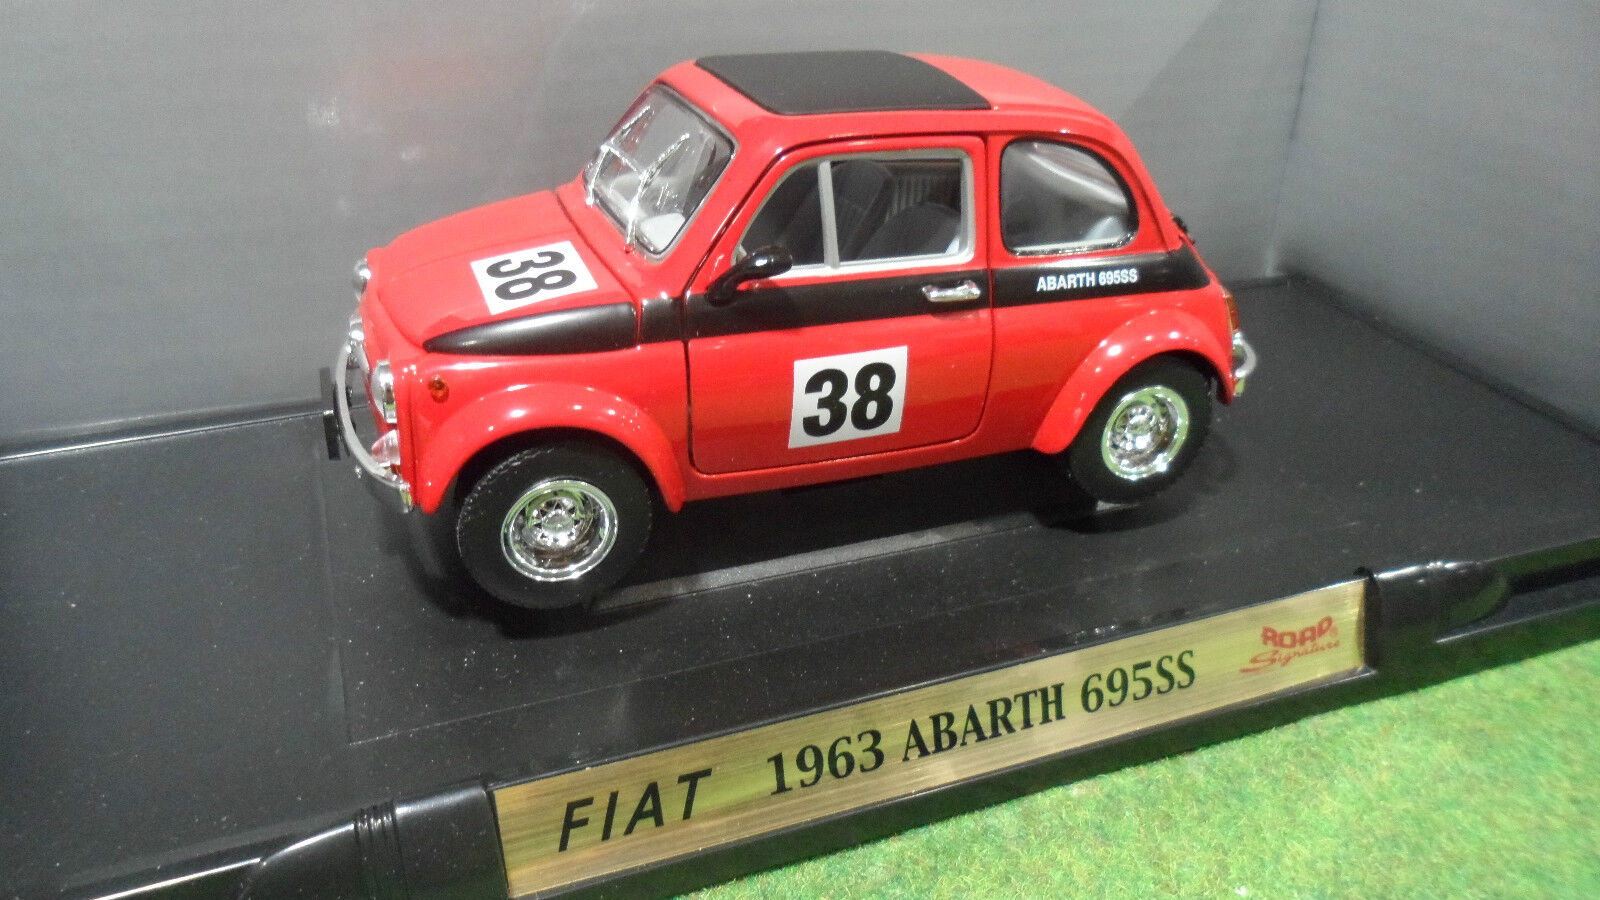 FIAT ABARTH 695SS  38 rge 1 18 ROAD SIGNATURE 92338 voiture miniature collection